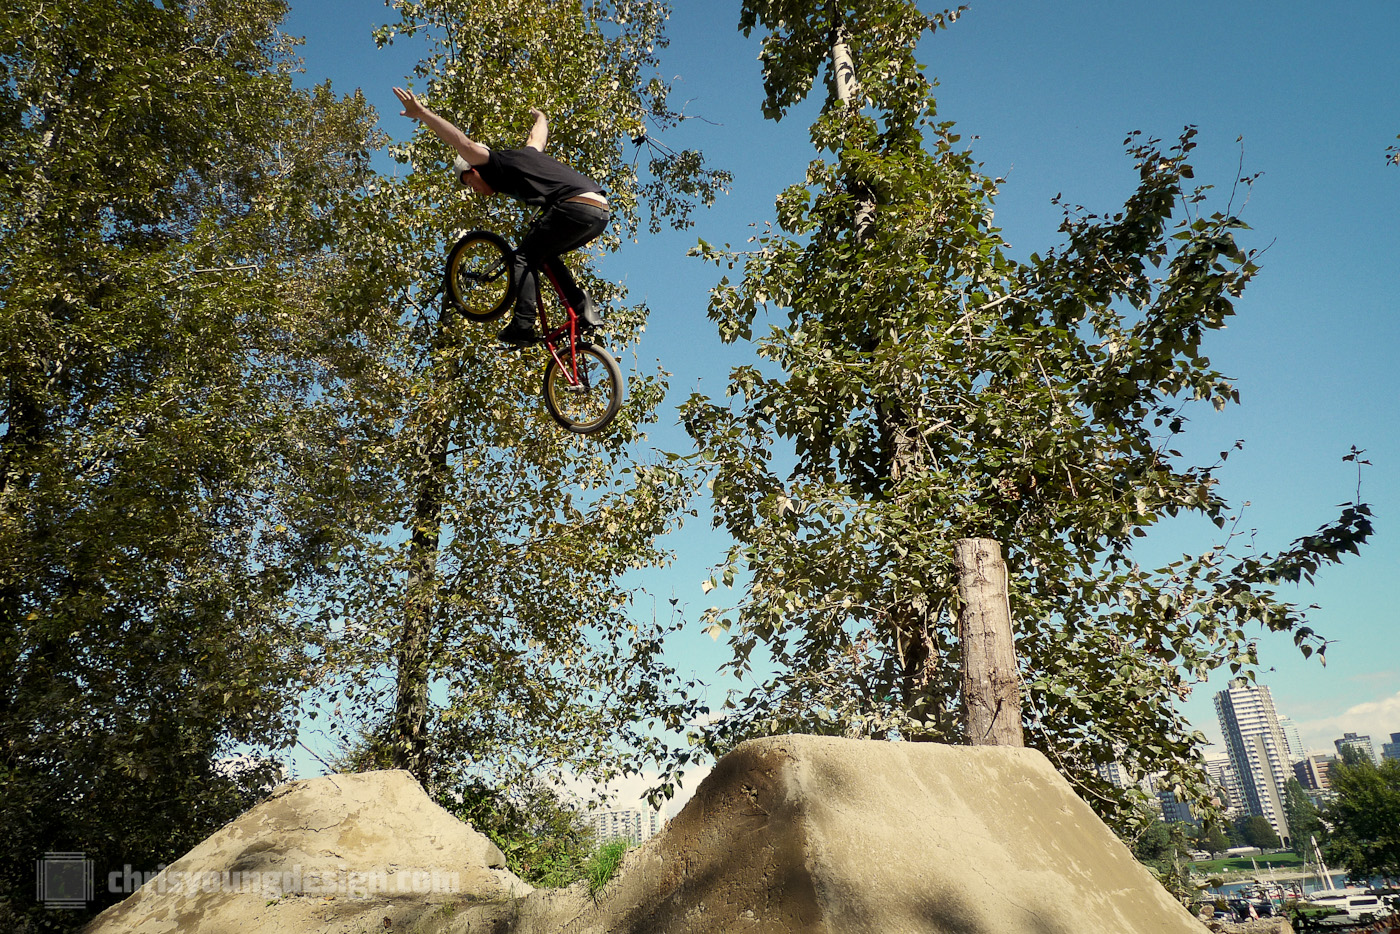 No-hander over the hip at the Vanier Park Dirt Jumps grand opening.